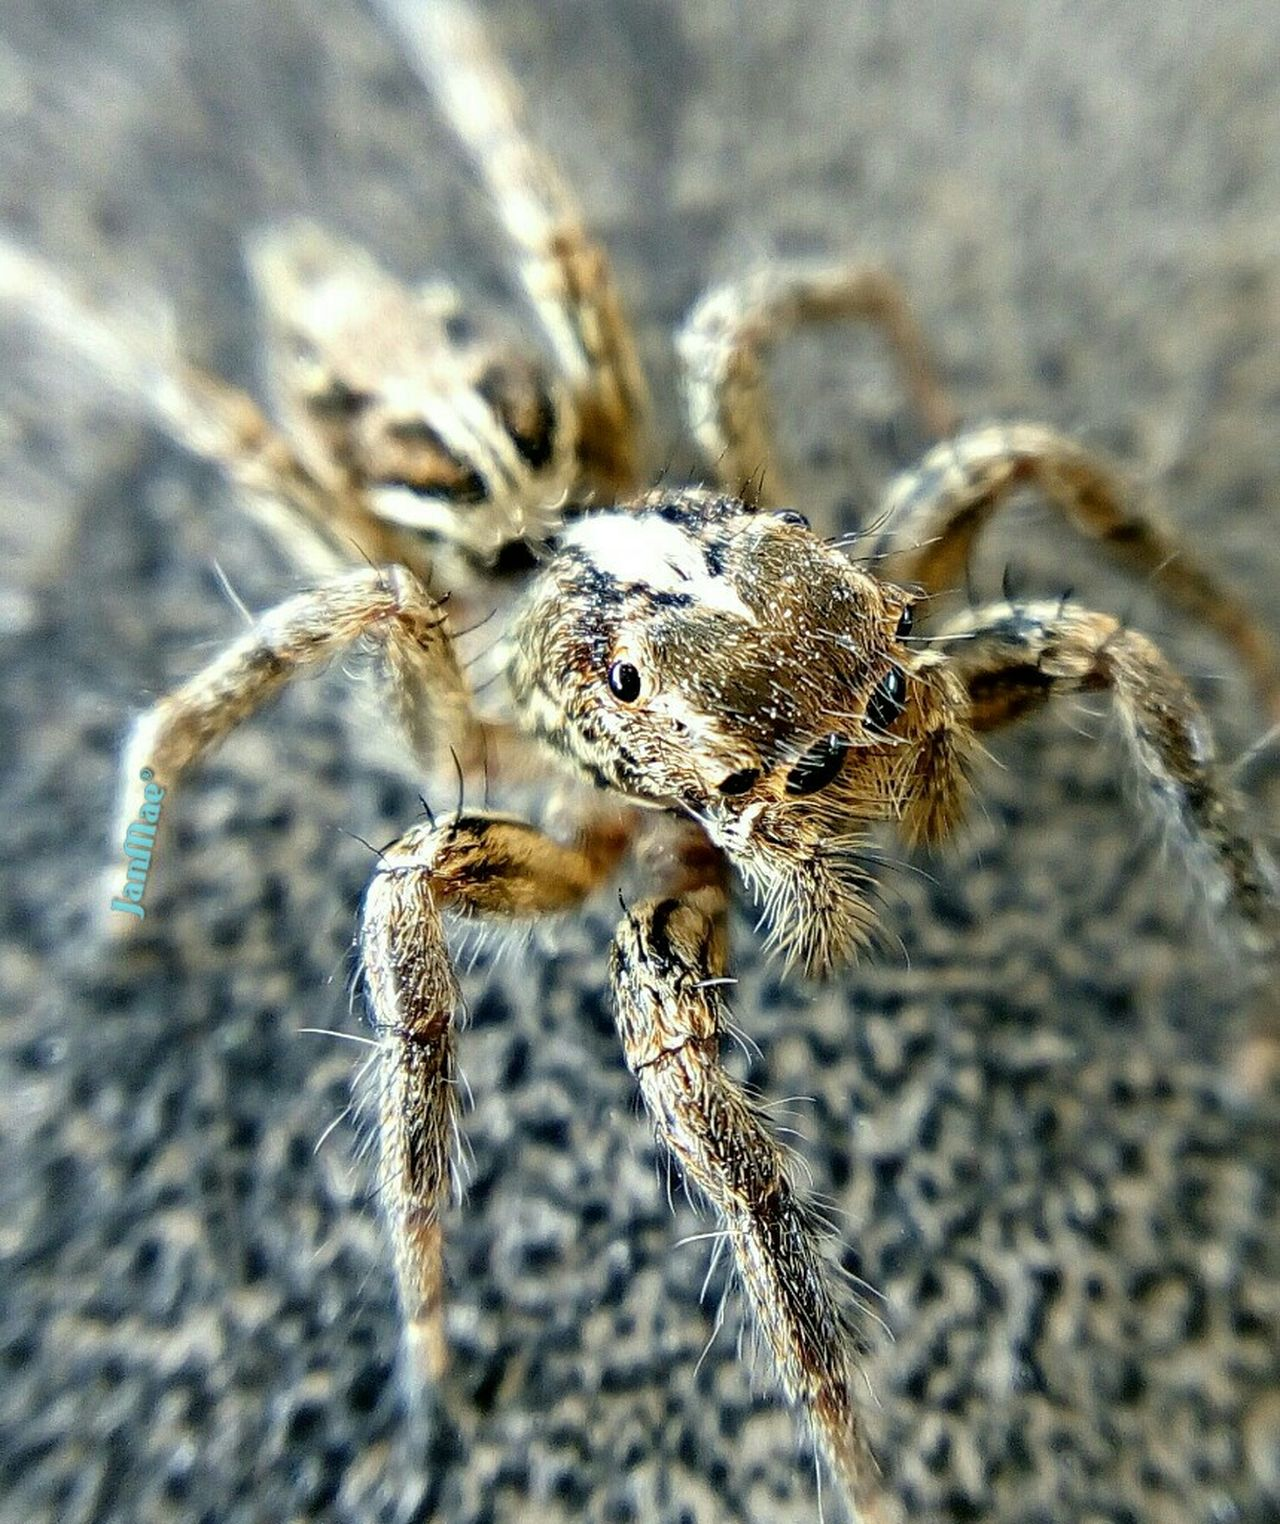 Beautiful Creatures Jumping Spider Nature Macro Photography Mcl -k3note